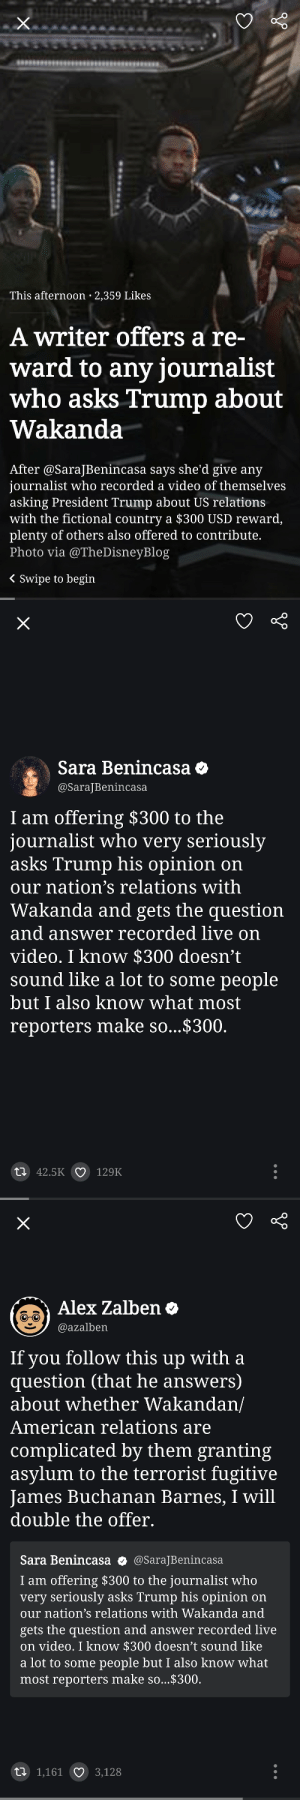 Tumblr, James Buchanan, and American: This afternoon 2,359 Likes  A writer offers a re-  ward to any journalist  who asks Trump about  Wakanda  After @SaraJBenincasa says she'd give any  journalist who recorded a video of themselves  asking President Trump about US relations  with the fictional country a $300 USD reward,  plenty of others also offered to contribute.  Photo via @TheDisneyBlog  < Swipe to begin   Sara Benincasa  @SaraJBenincasa  I am offering $300 to the  journalist who very seriousl;y  asks Trump his opinion on  our nation's relations with  Wakanda and gets the question  and answer recordded live on  video. I know $300 doesn't  sound like a lot to some people  but I also know what most  reporters make so...$300  42.5K 129K   Alex žalben  @azalben  If vou follow this up with a  question (that he answers)  about whether Wakandan/  American relations are  complicated by them granting  asylum to the terrorist fugitive  James Buchanan Barnes, I will  double the offer.  Sara Benincasa o @SaraJBenincasa  I am offering $300 to the journalist who  very seriously asks Trump his opinion on  our nation's relations with Wakanda and  gets the question and answer recorded live  on video. I know $300 doesn't sound like  a lot to some people but I also know what  most reporters make so...$300  1,161  3,128 amuzed1:😂😂😂😂 Now I need both of these things to happen.